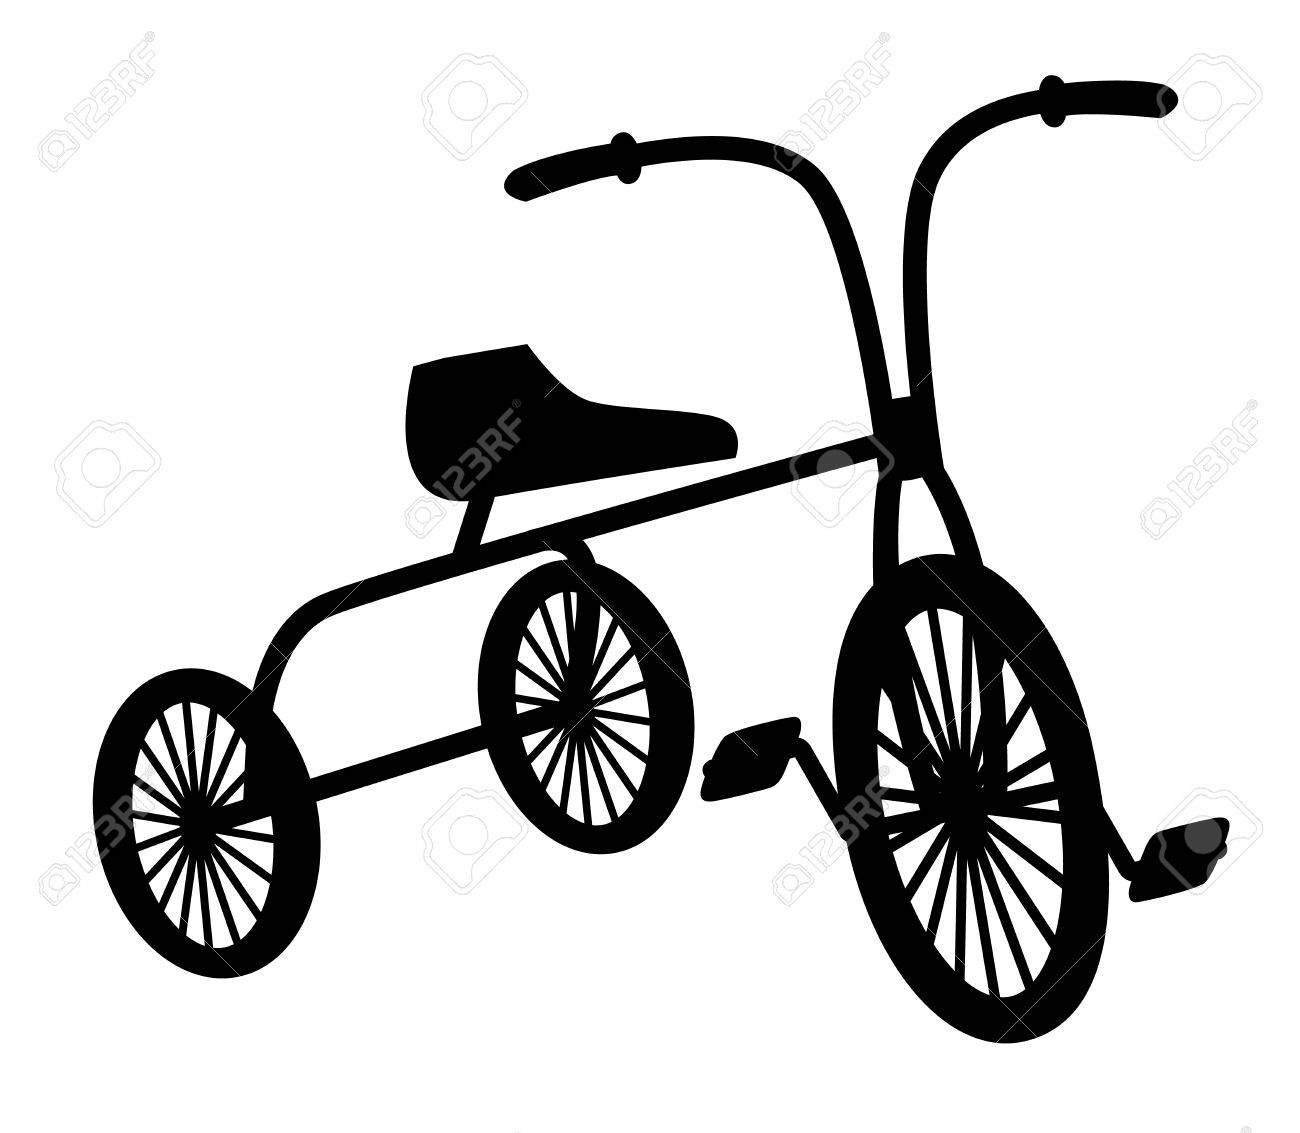 Kids Vintage Bicycle Black Silhouette Royalty Free Cliparts Vectors